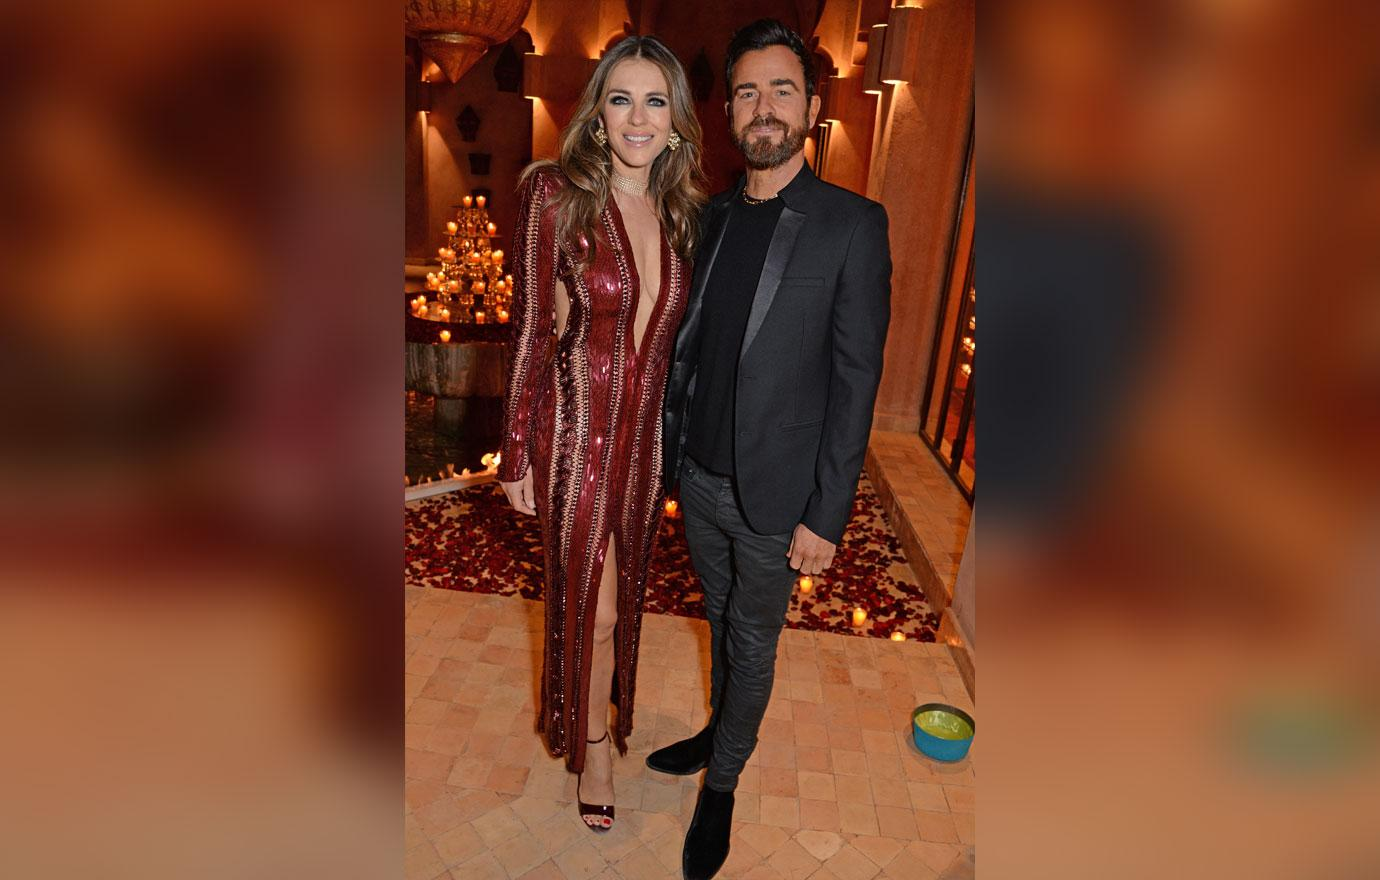 Elizabeth Hurley and Justin Theroux Spark Dating Rumors